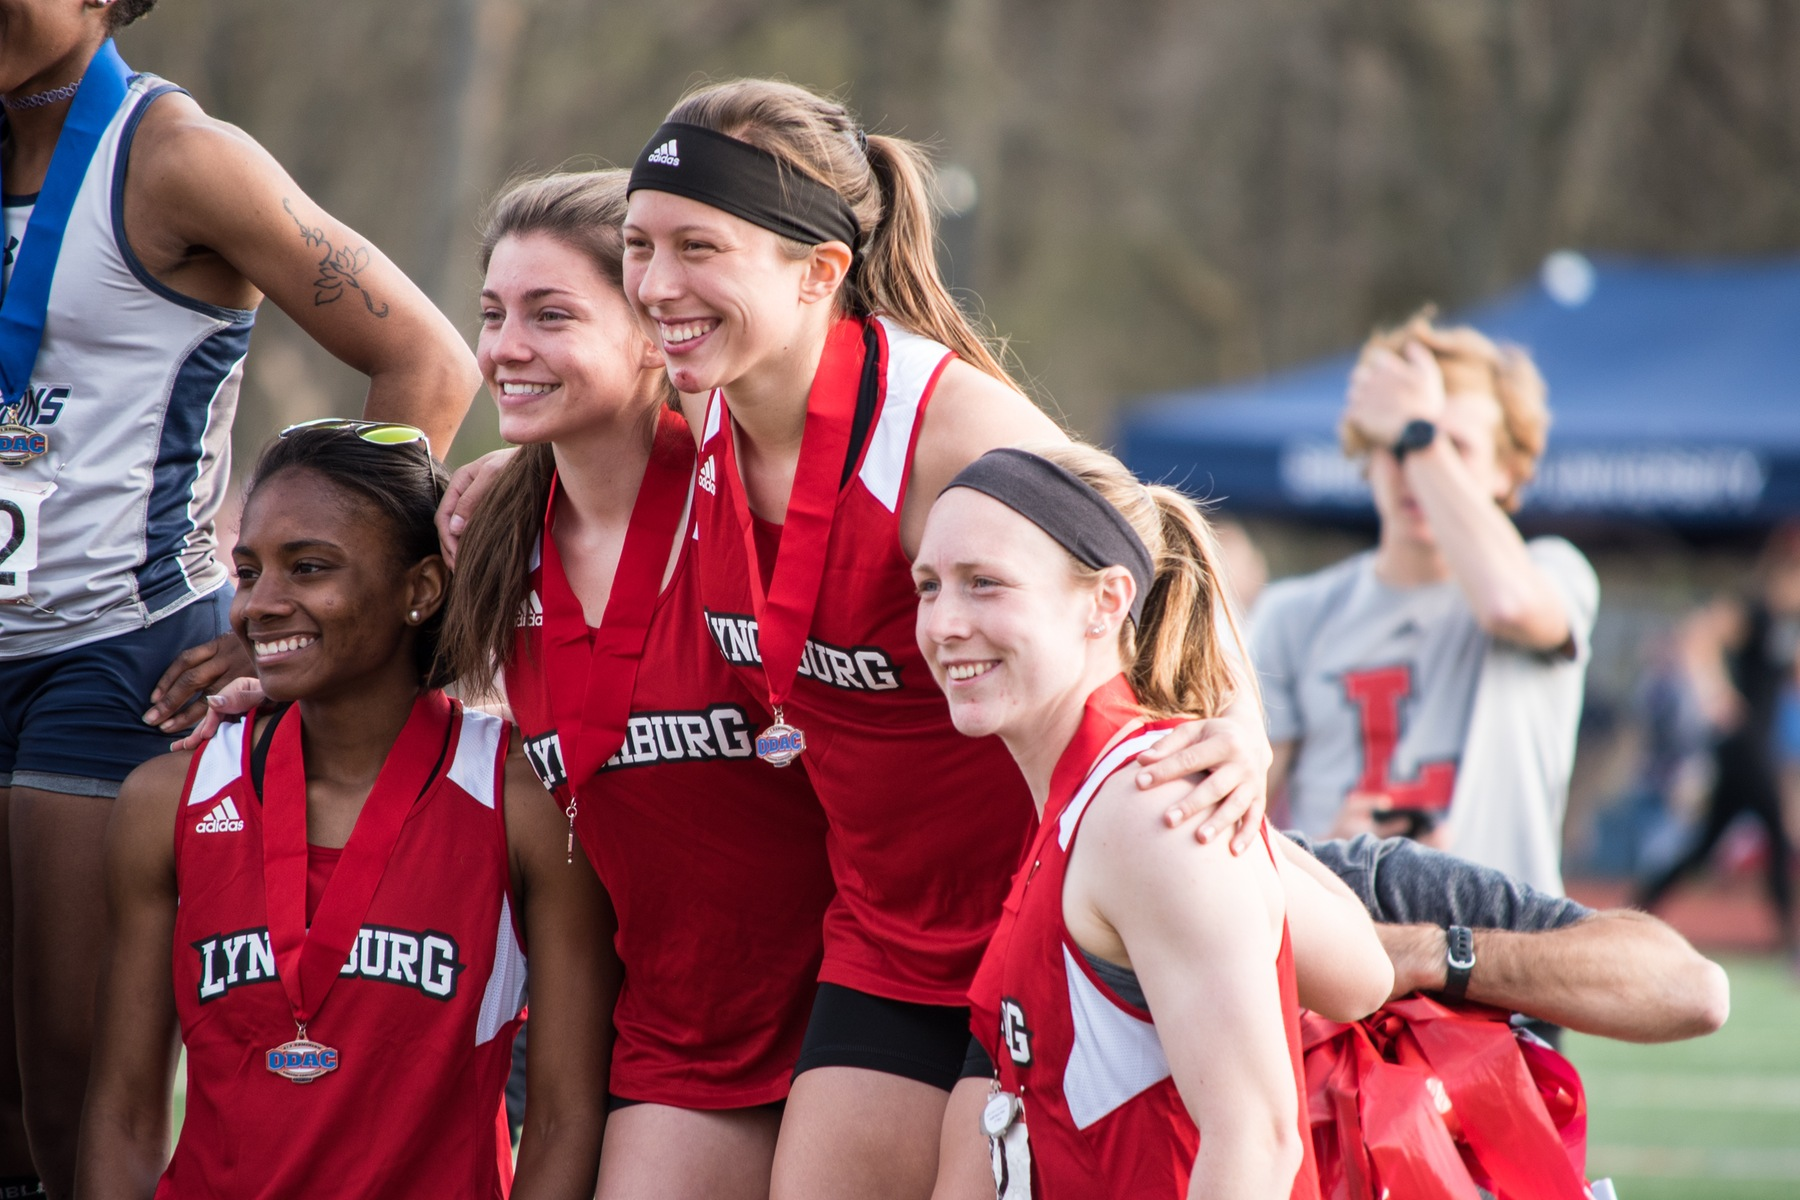 Lynchburg track athletes pose on the podium after winning a relay.